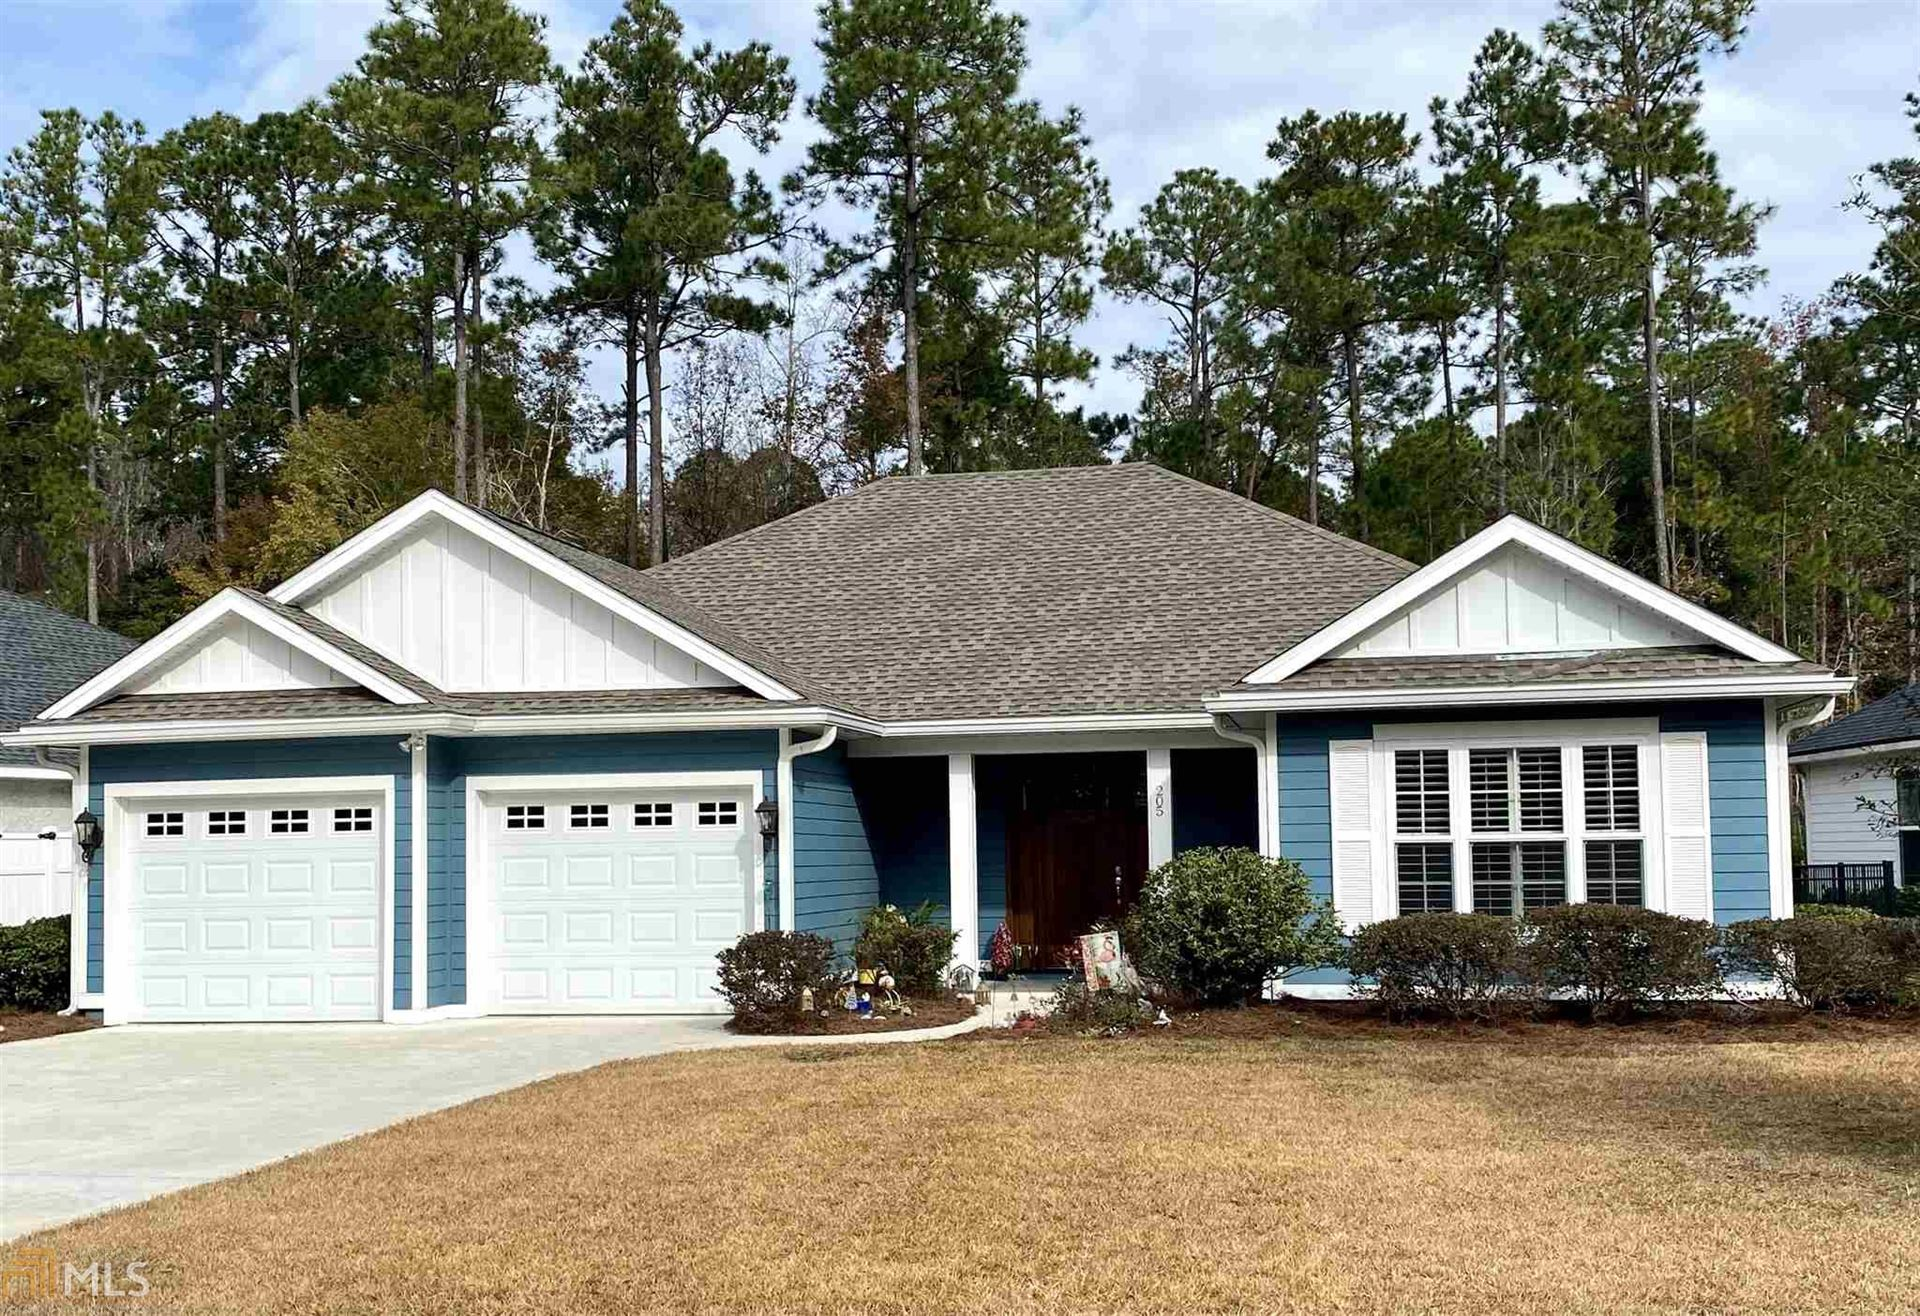 205 Boatsman Way, Saint Marys, GA 31558 - MLS#: 8902250